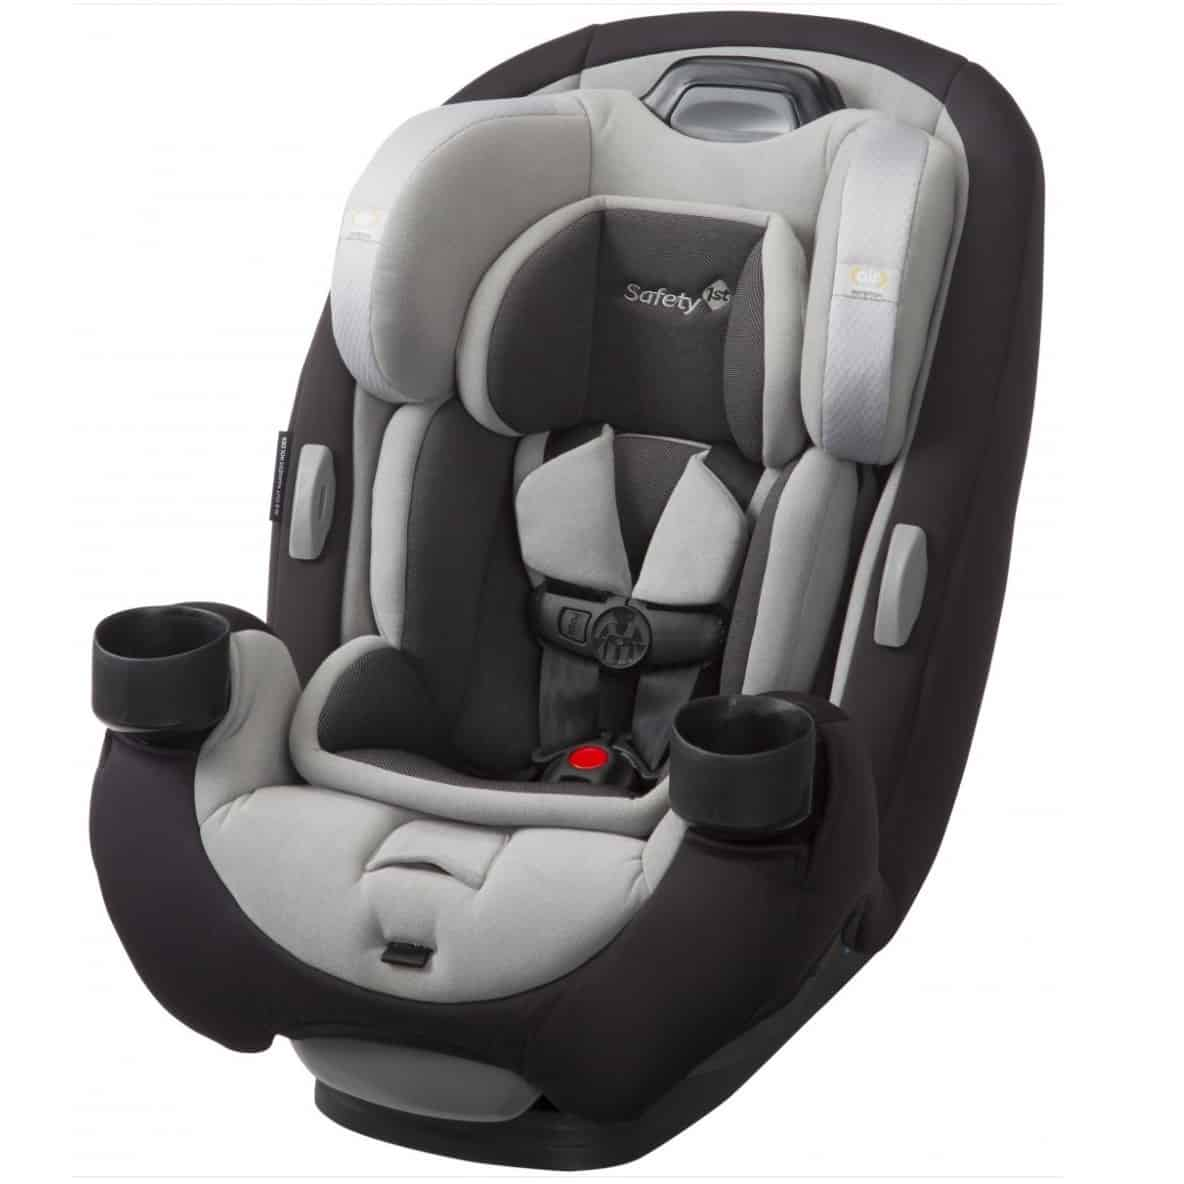 Safety 1st Grow and Go EX Air – How-To-SAFETY, Car Seat Installation